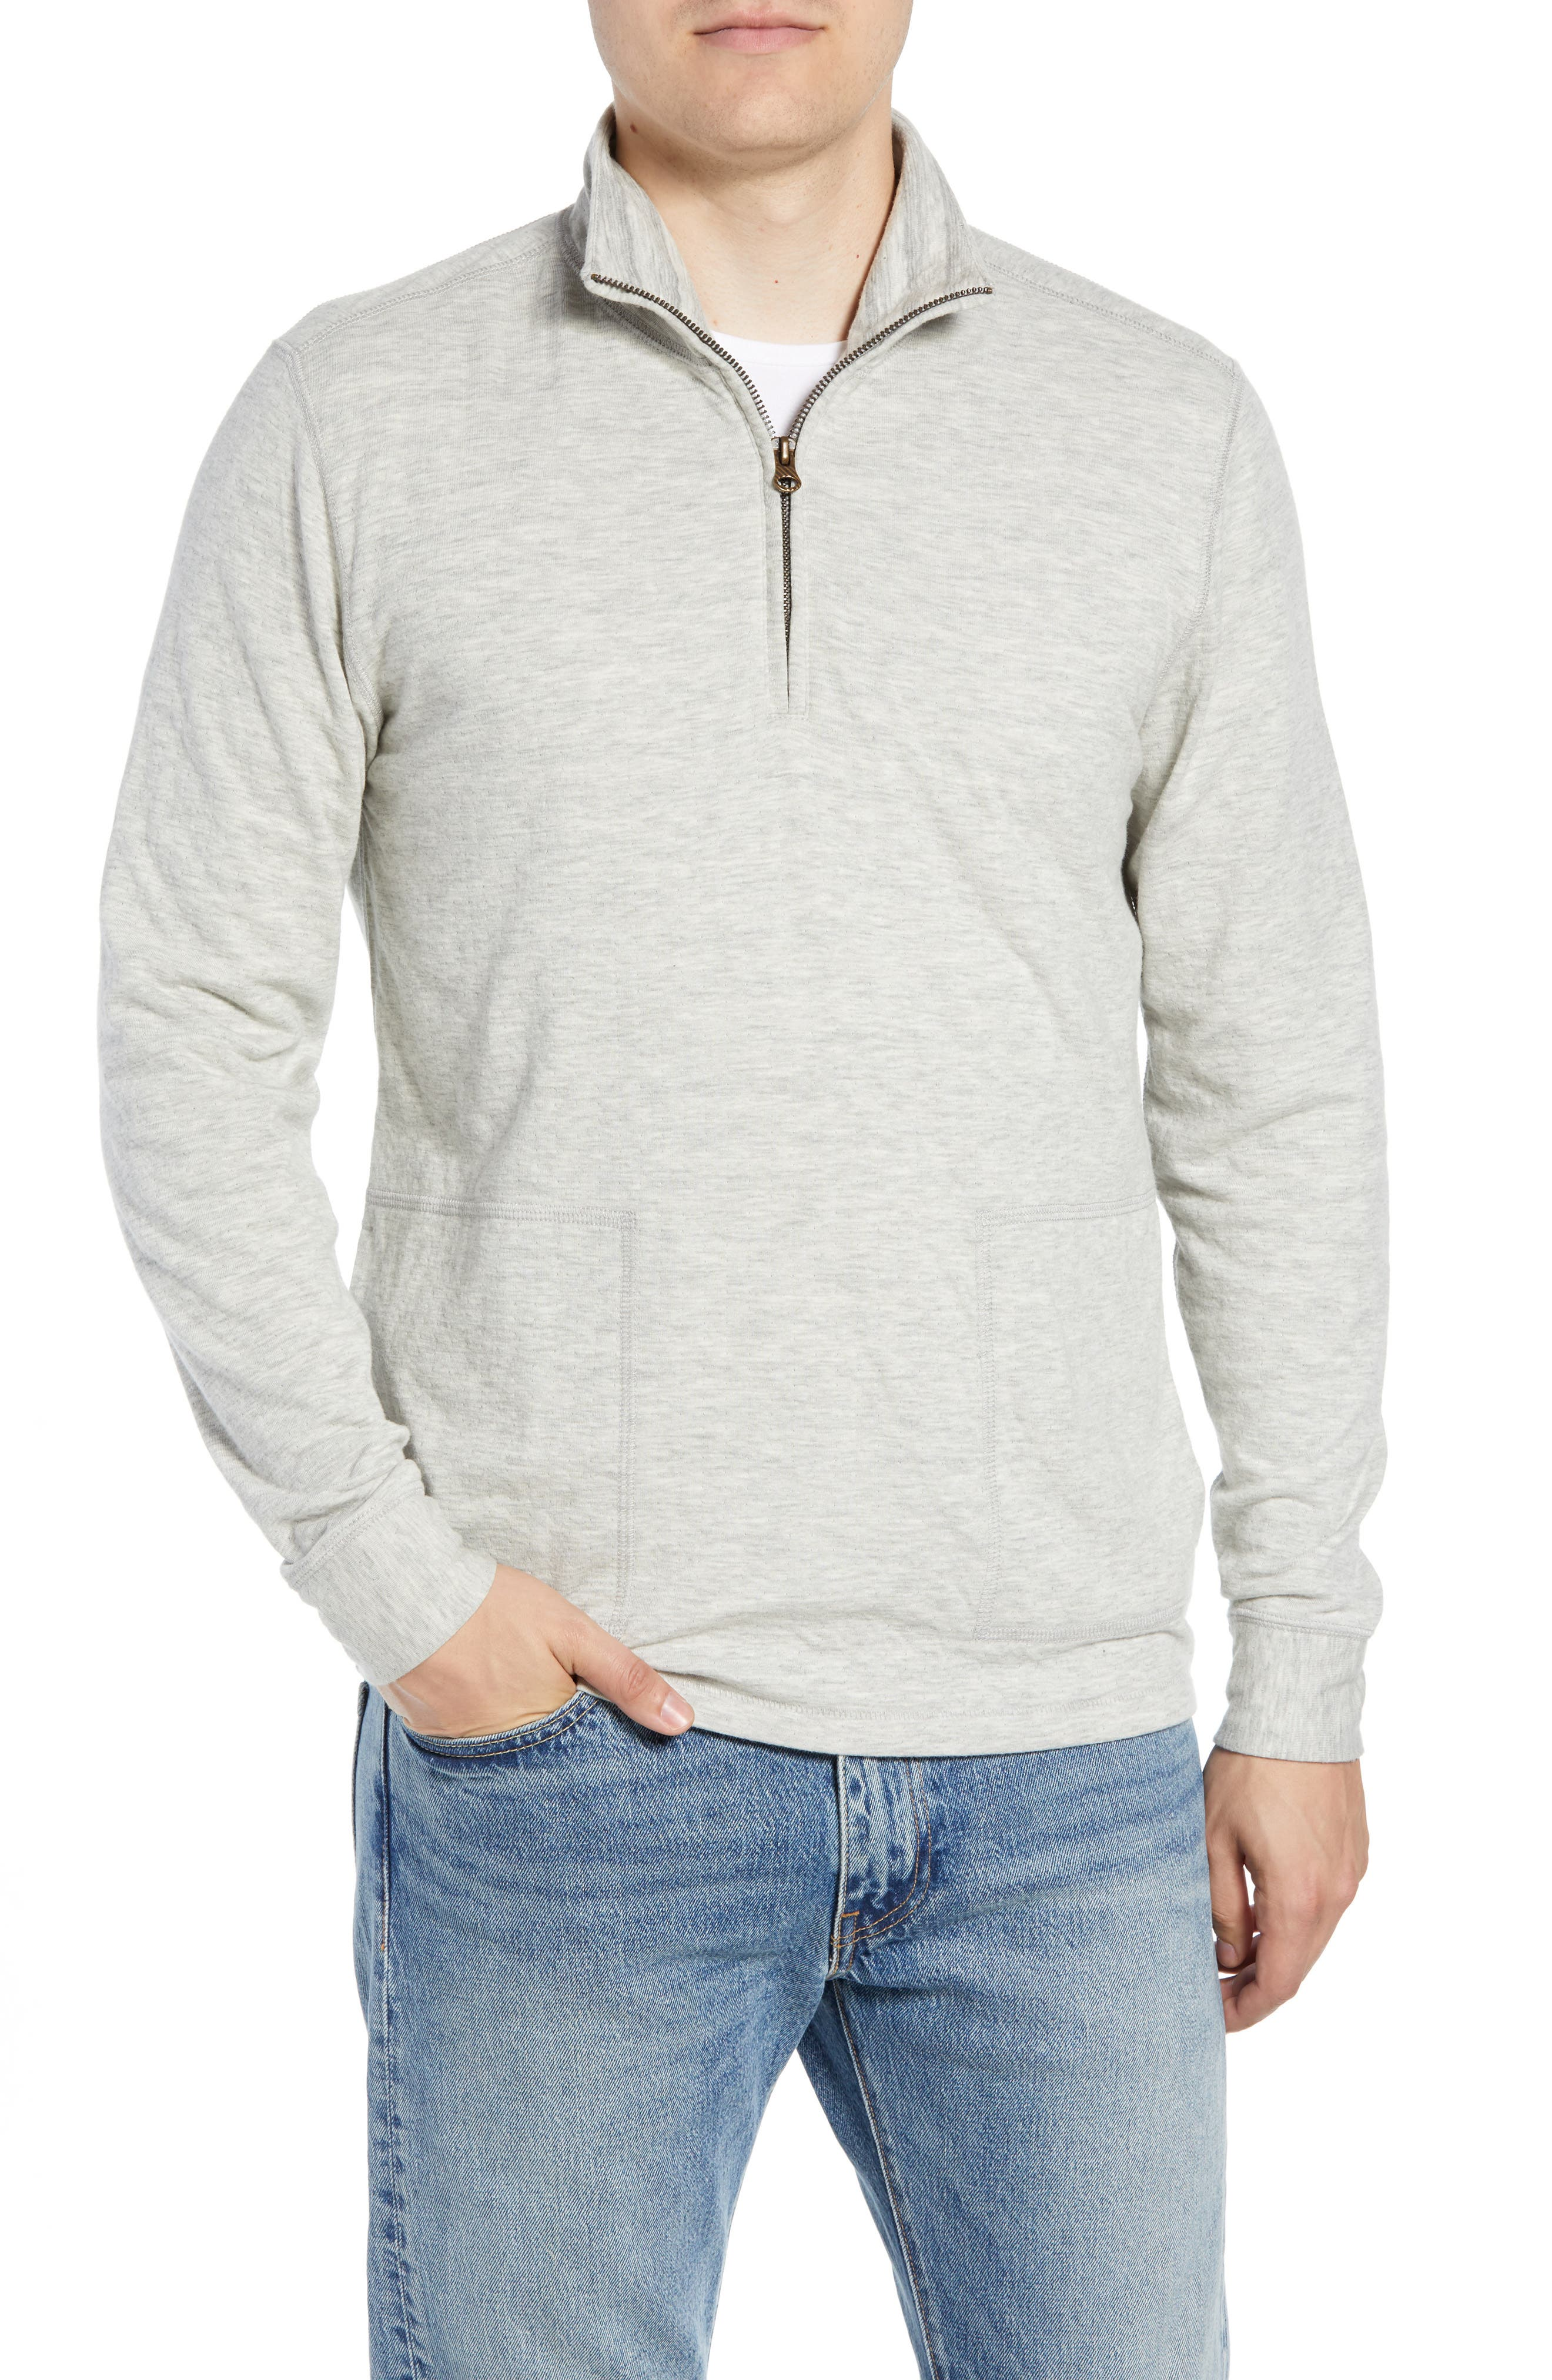 Charles Regular Fit Half Zip Sweater, Main, color, 074